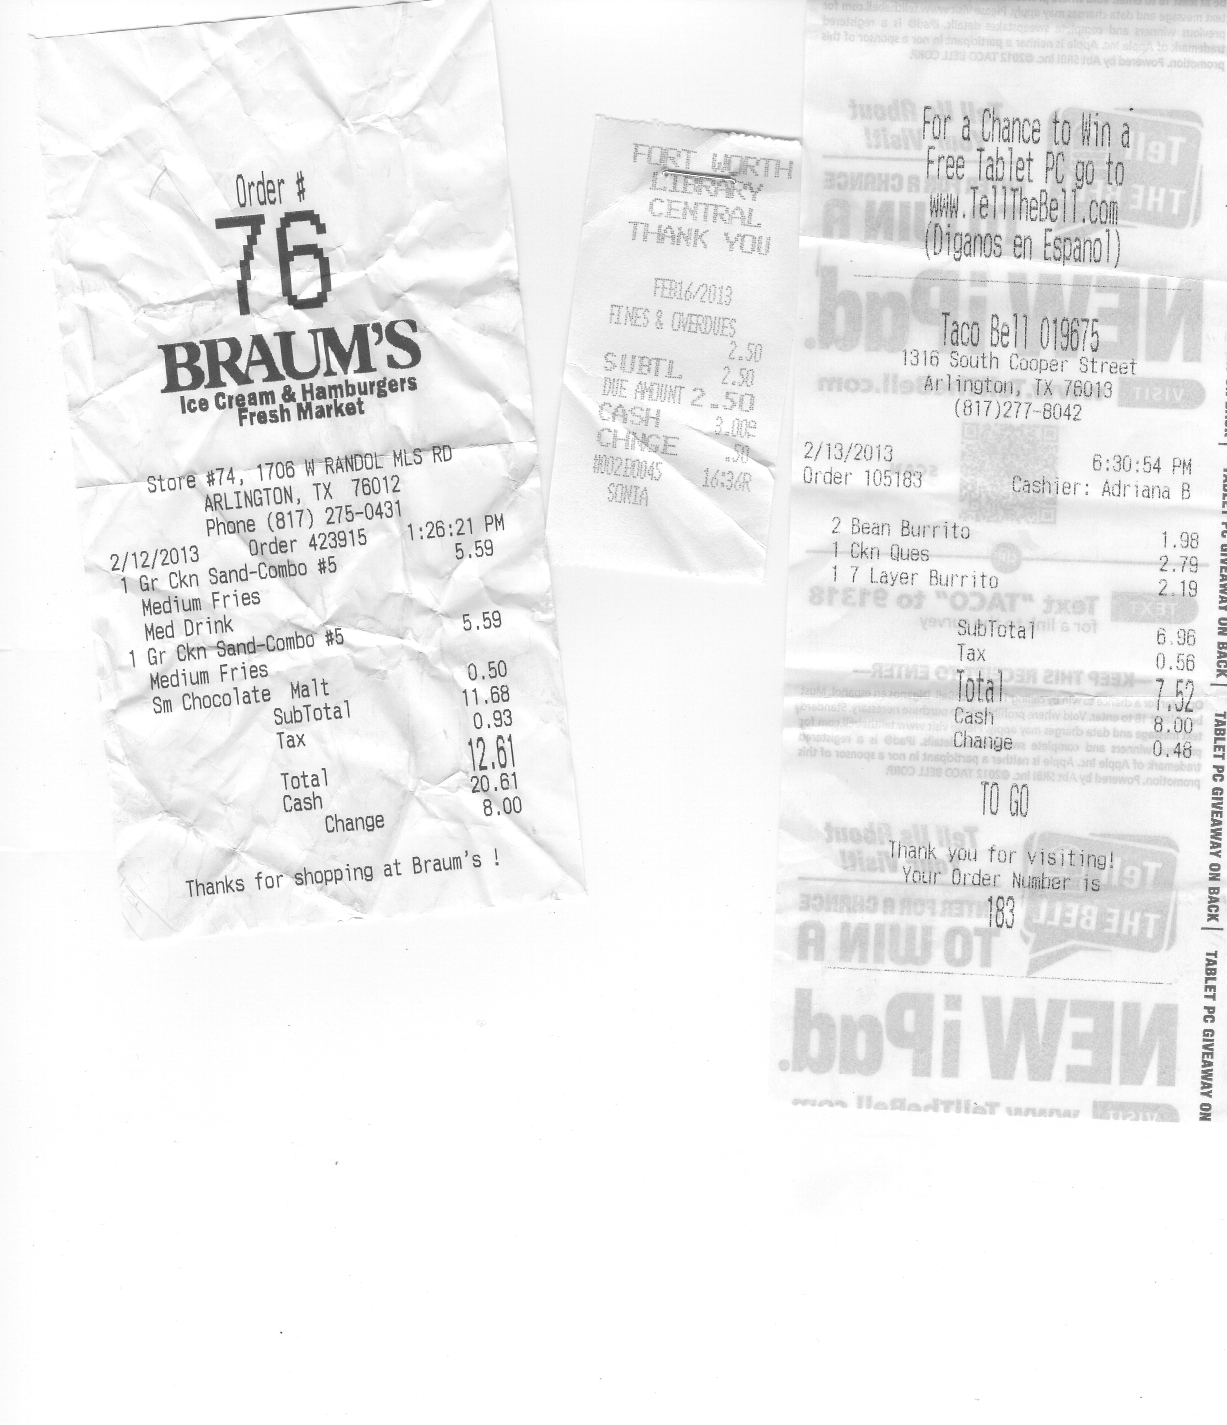 A photocopy of three crumpled receipts. Left: Receipt from Braum's Ice cream and Hamburgers Fresh Market. Center: Stapled receipt from the Fort Worth Public library. Right: Taco Bell receipt with faded images of large-font text from the back of the receipt showing through.